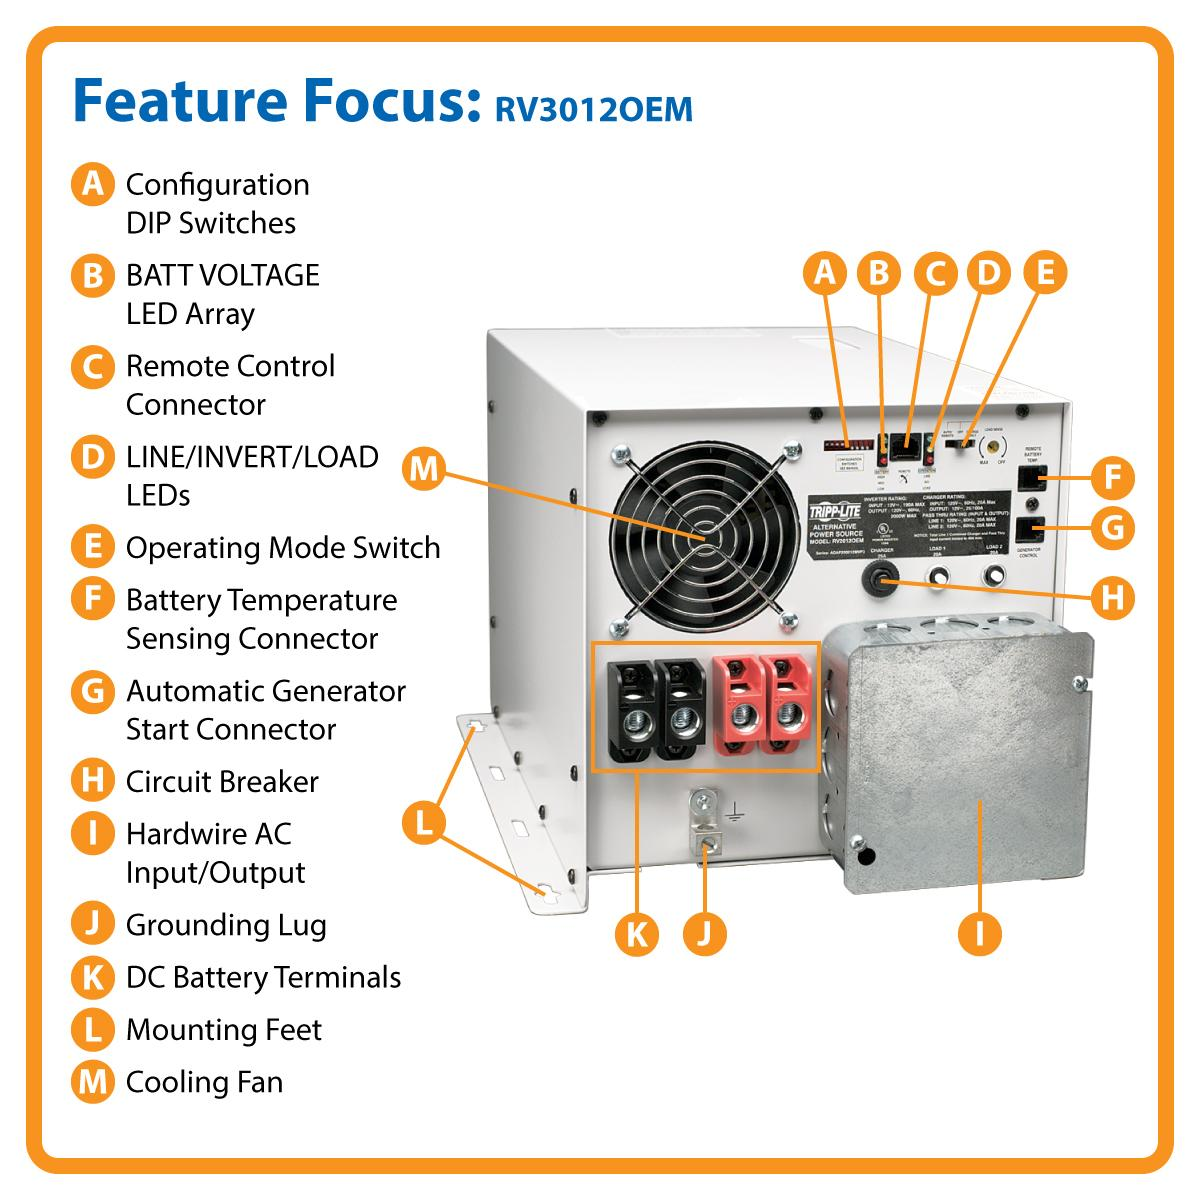 3000w Powerverter Rv Inverter Charger With Hardwire Freedom 20 Wiring Diagram Works As An Standalone Ac Power Source Or Ups